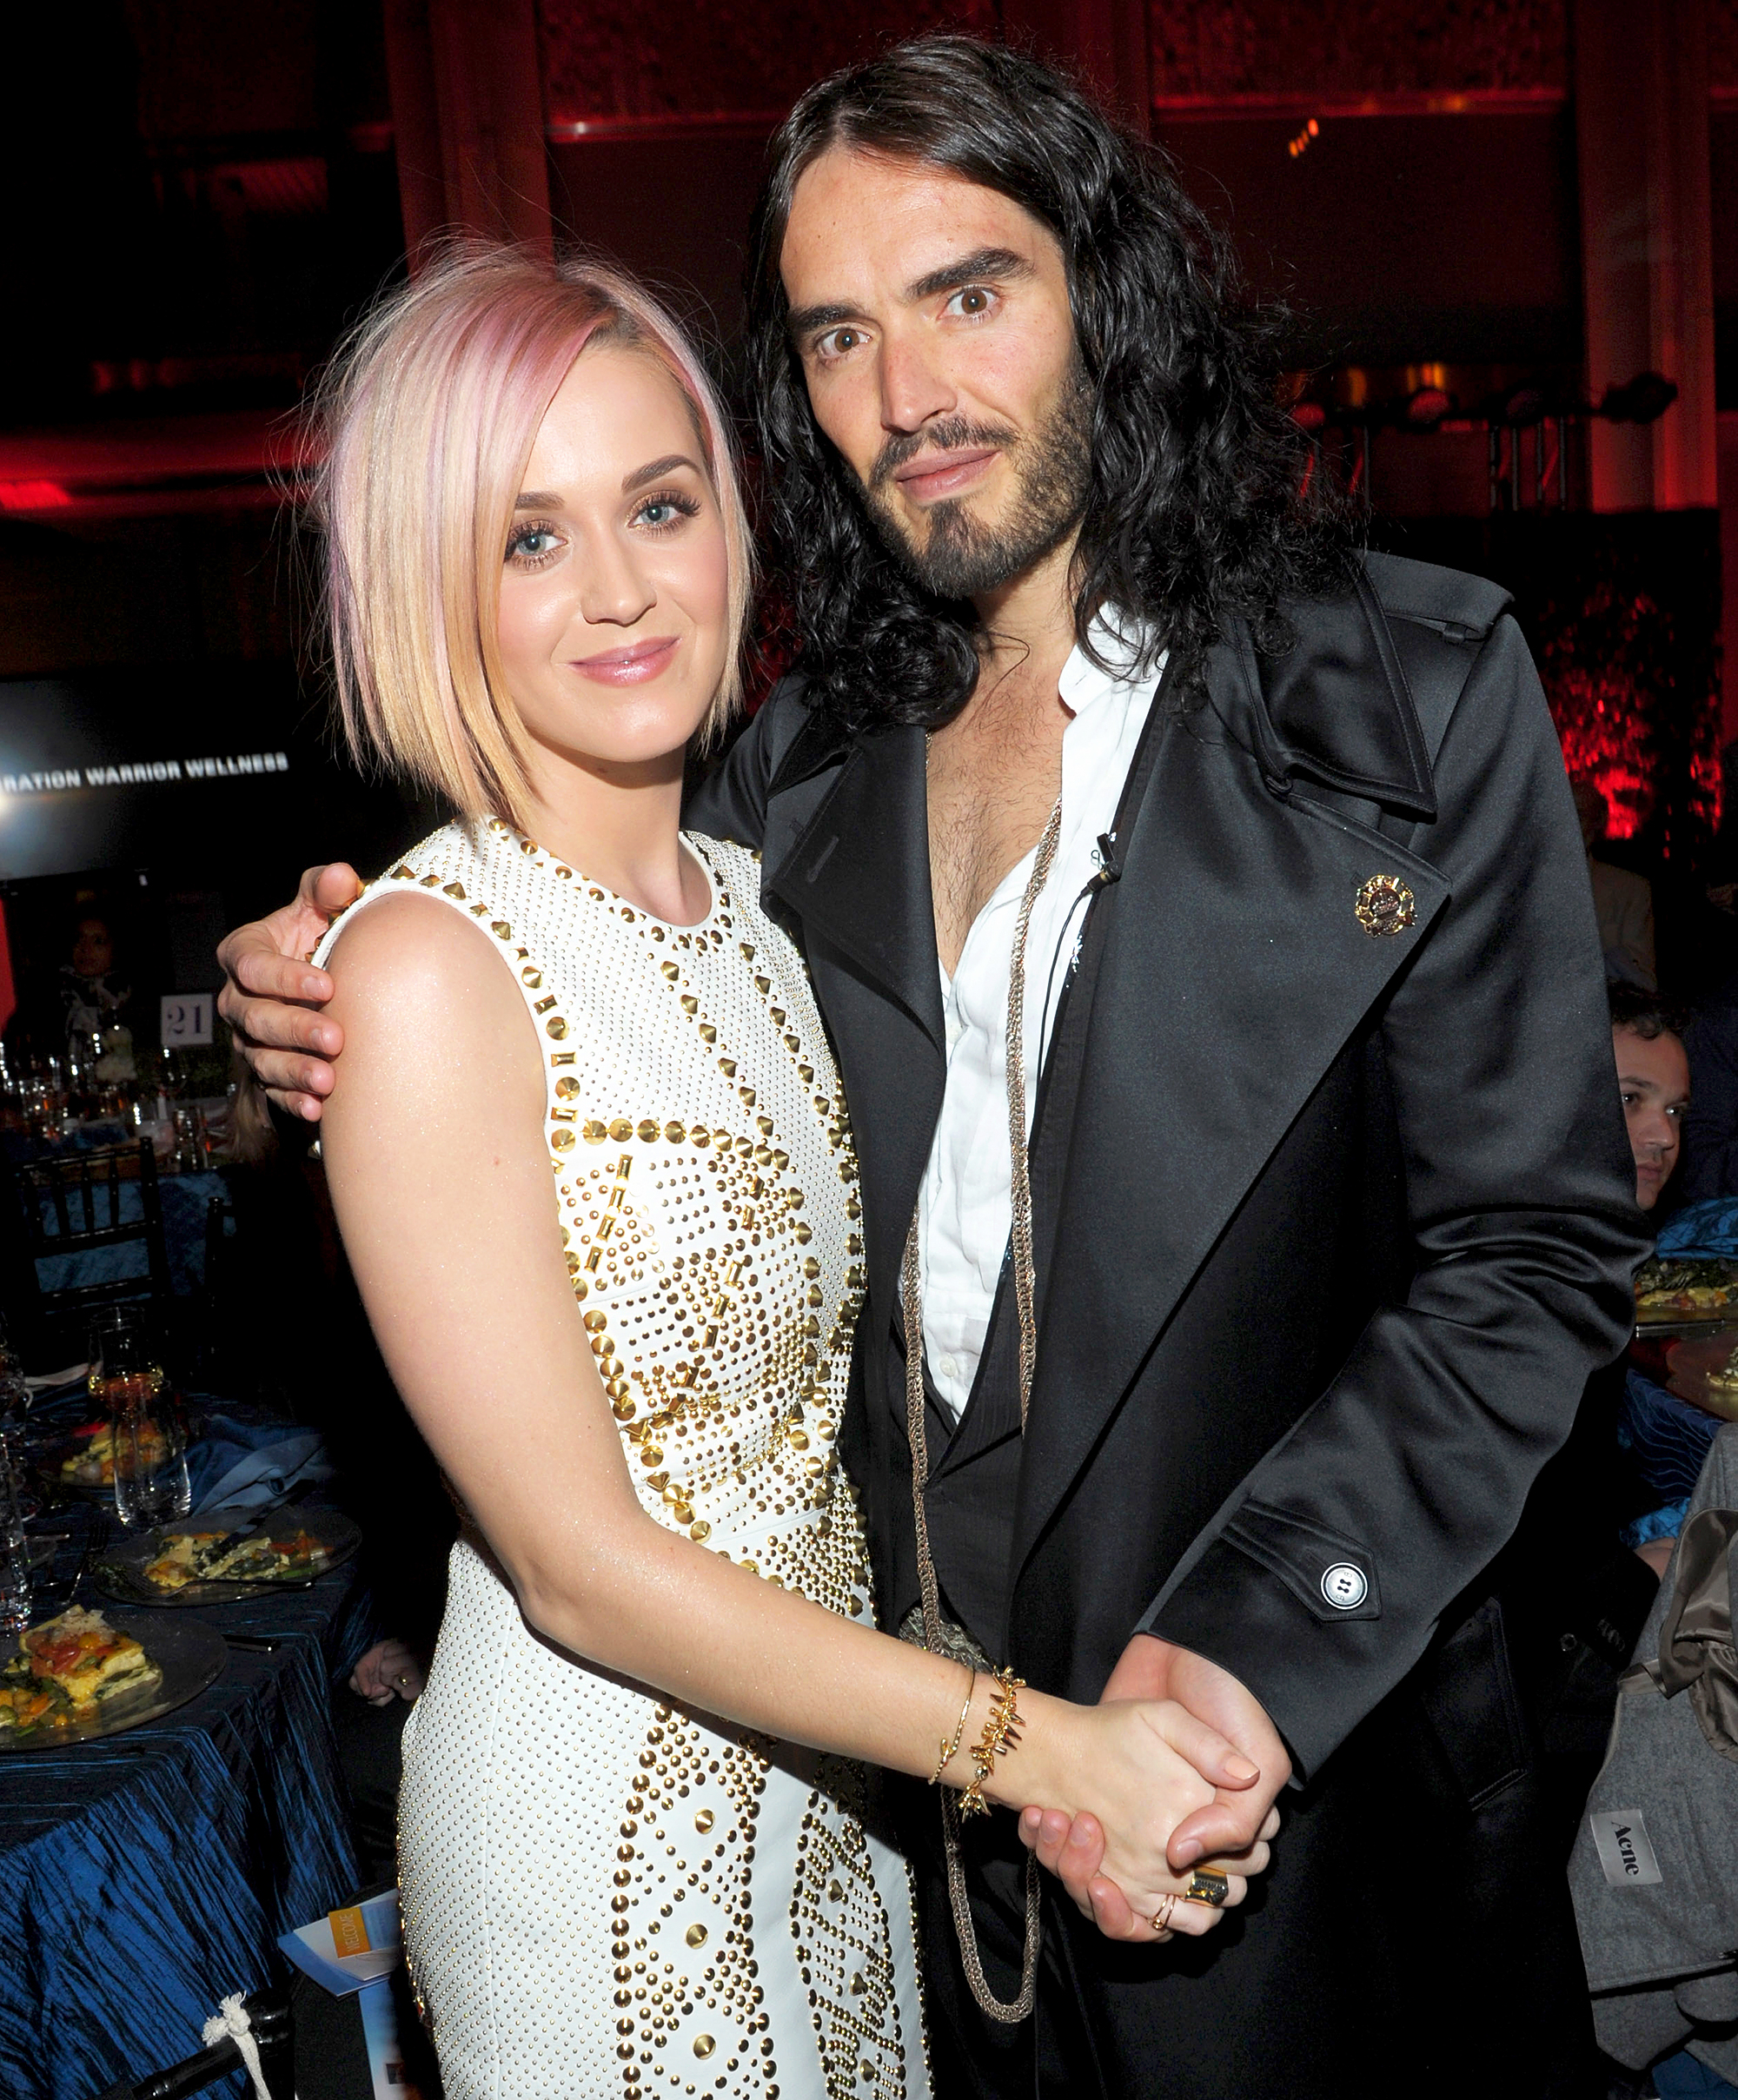 naked Russell Brand (born 1975) (32 pictures) Video, Instagram, cameltoe